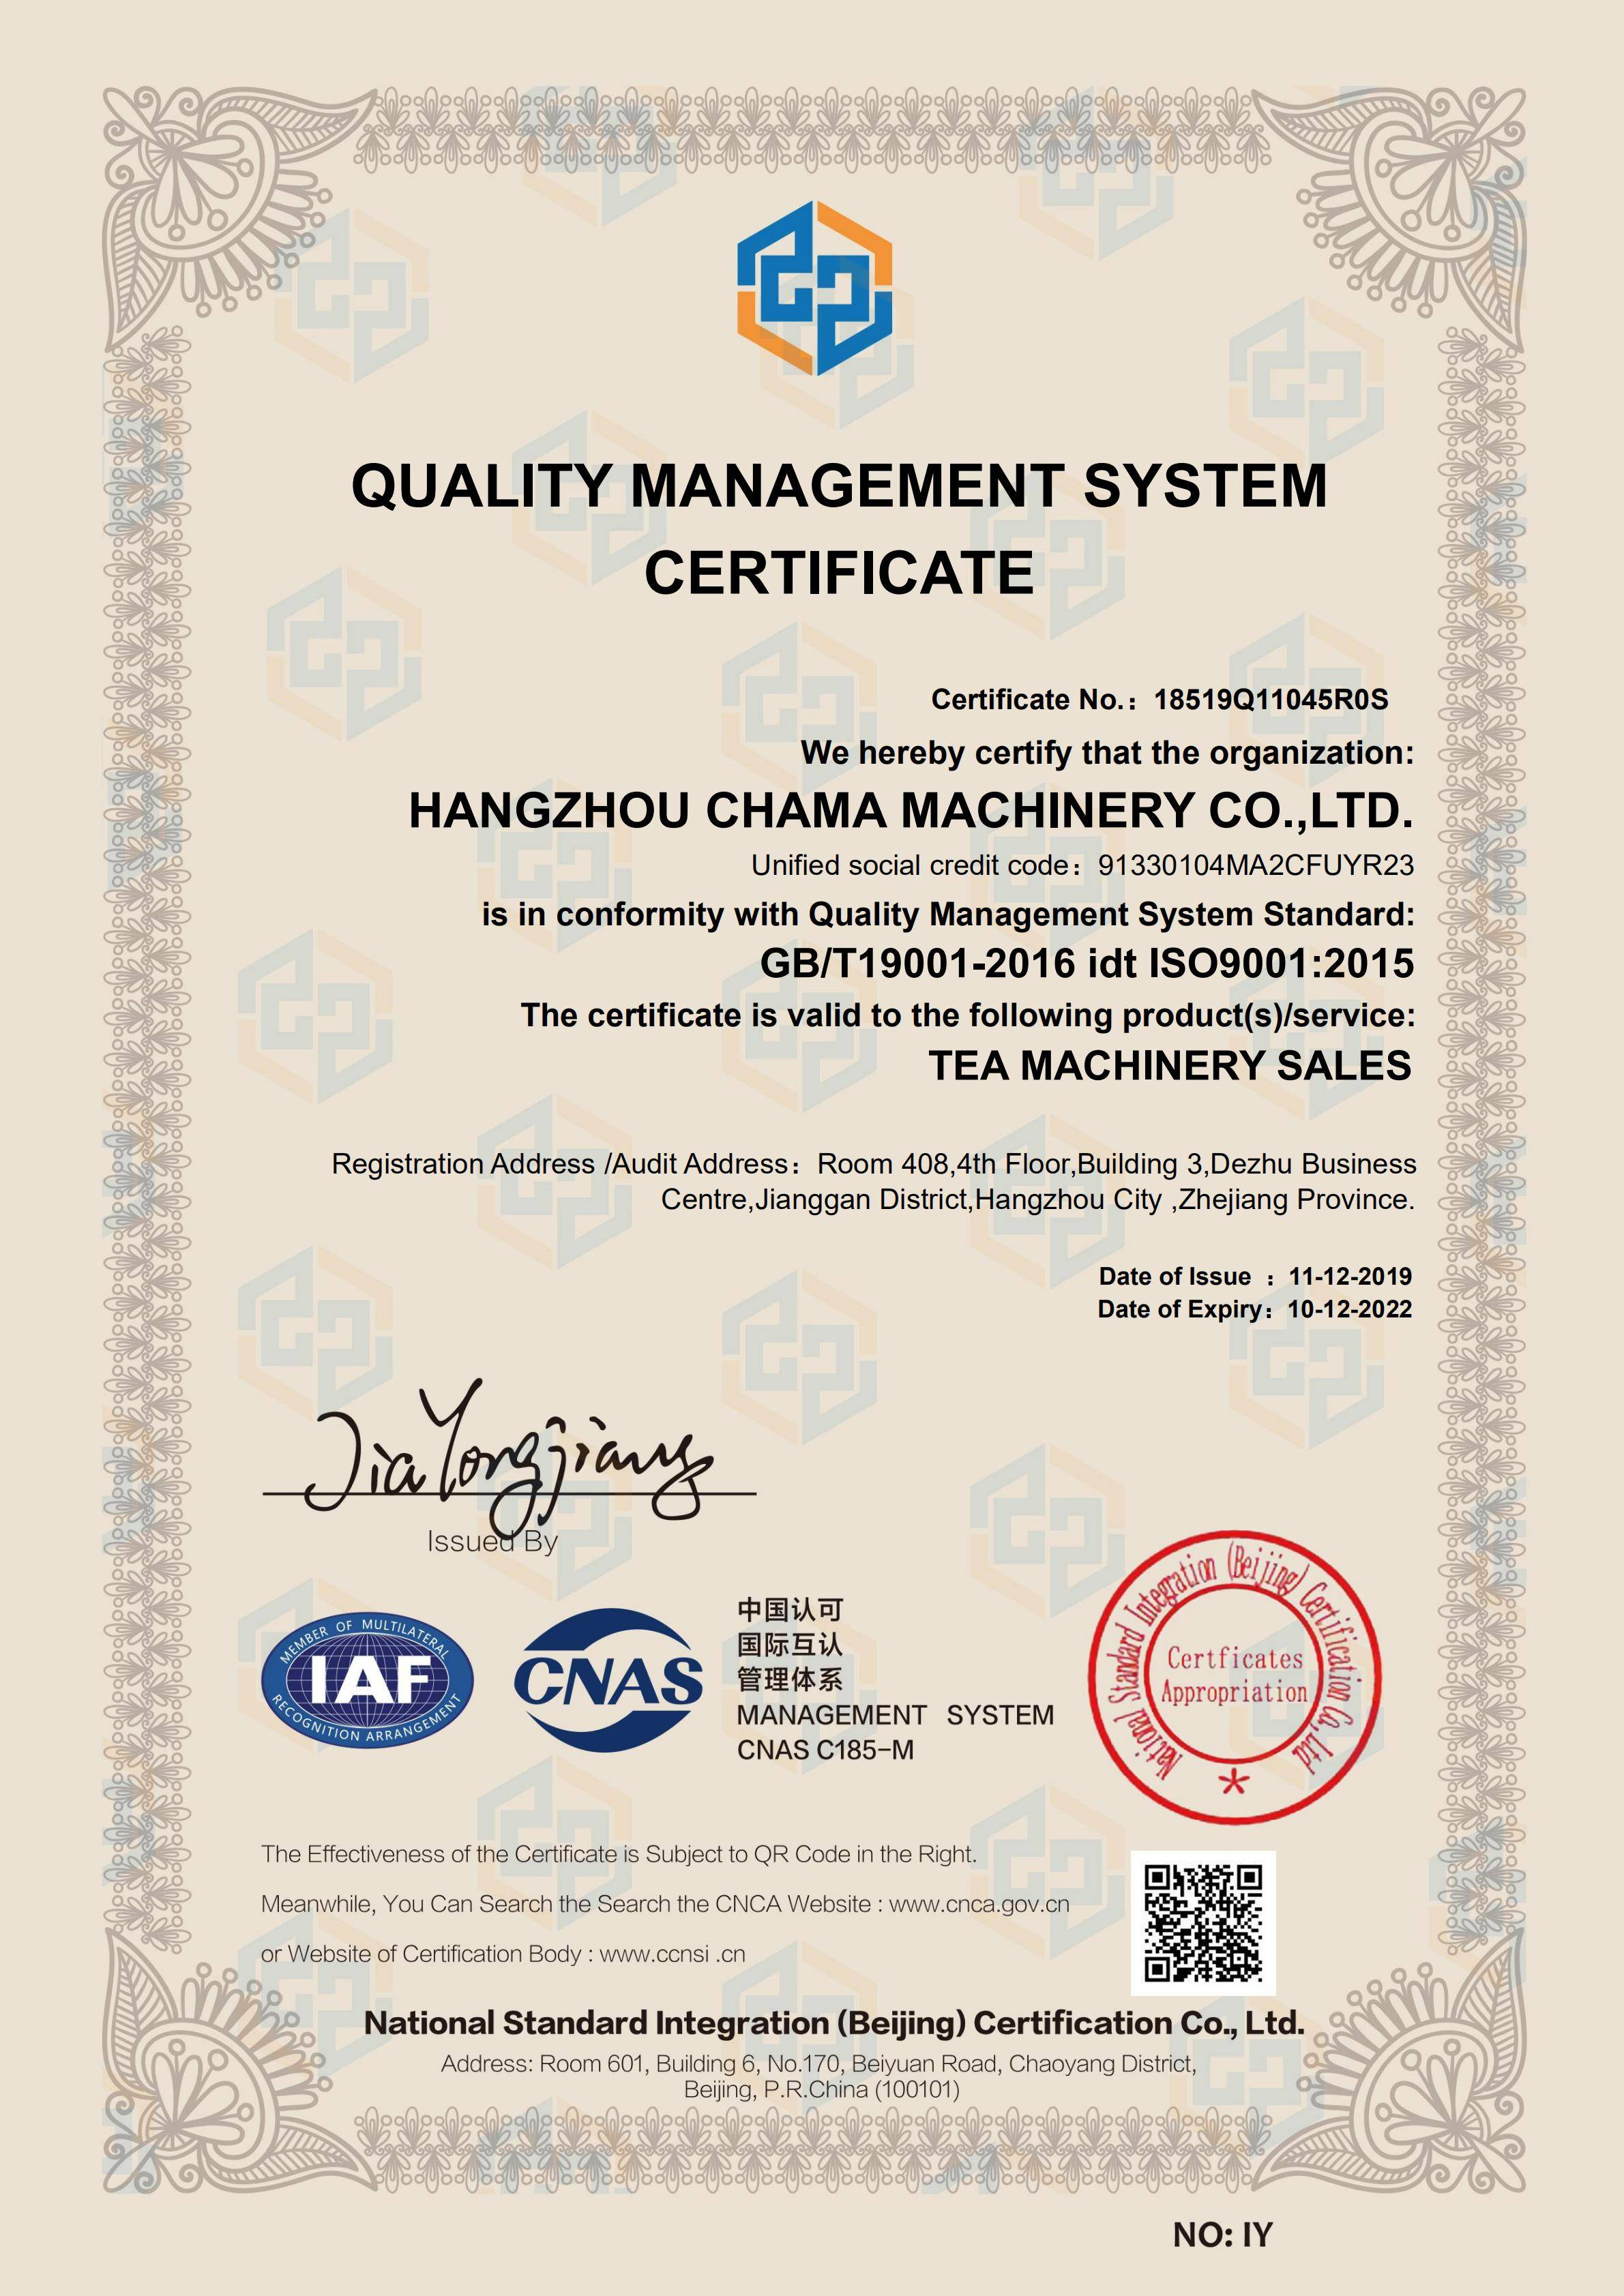 Passed ISO quality certification